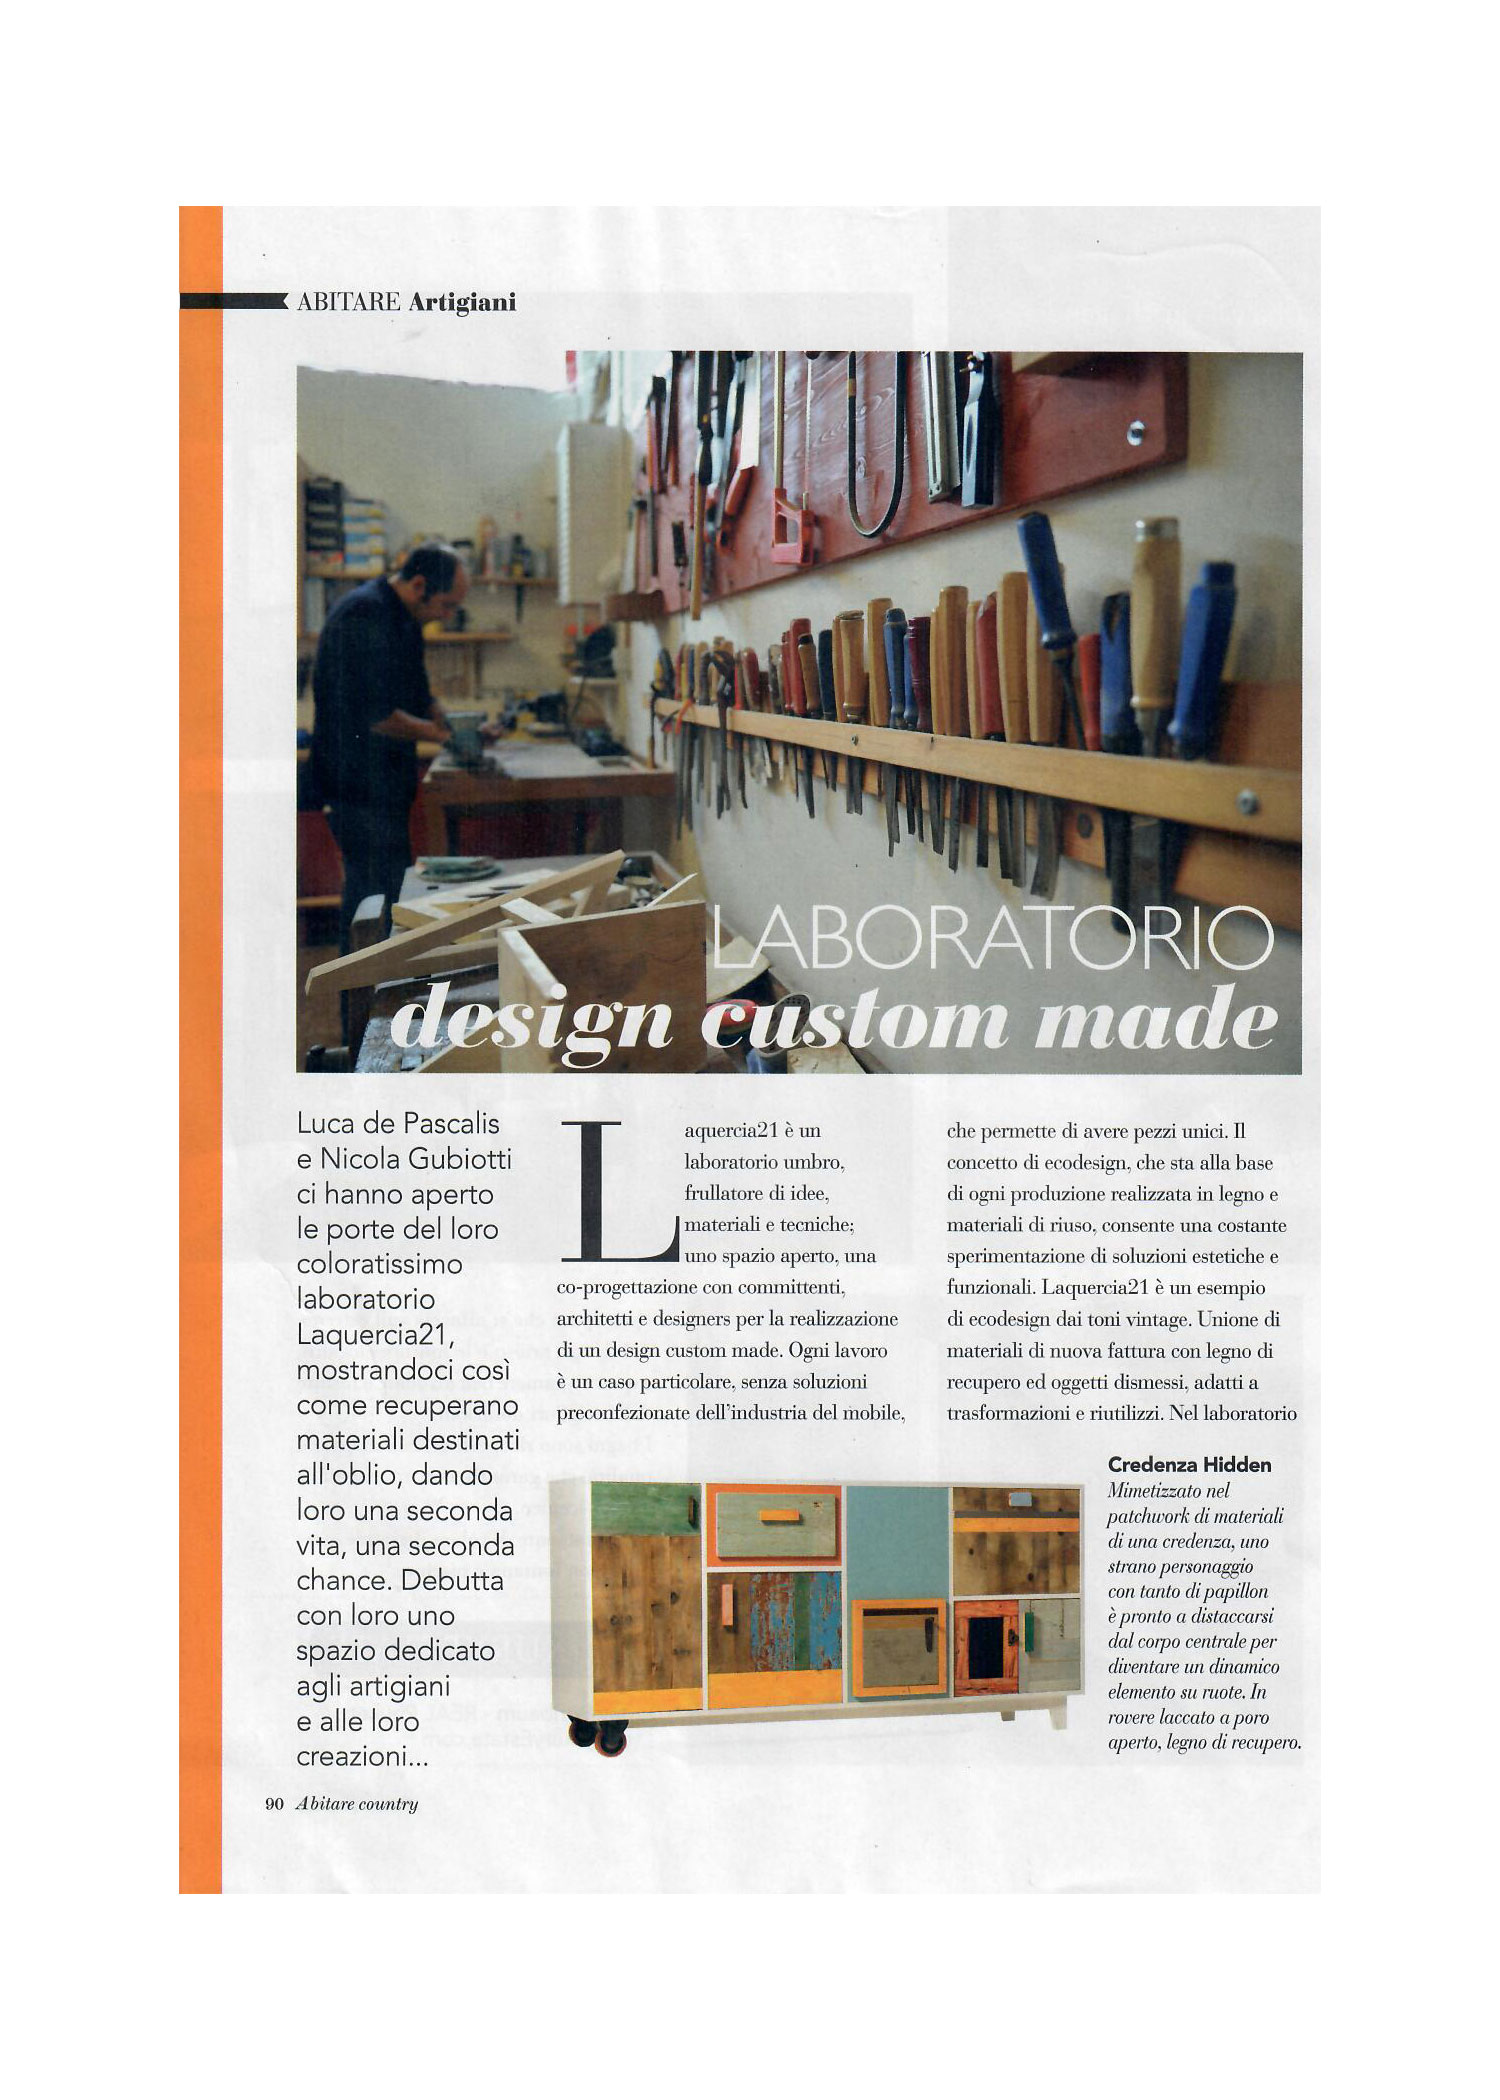 Un laboratori di design custom made rivista di arredamento Abitare Country